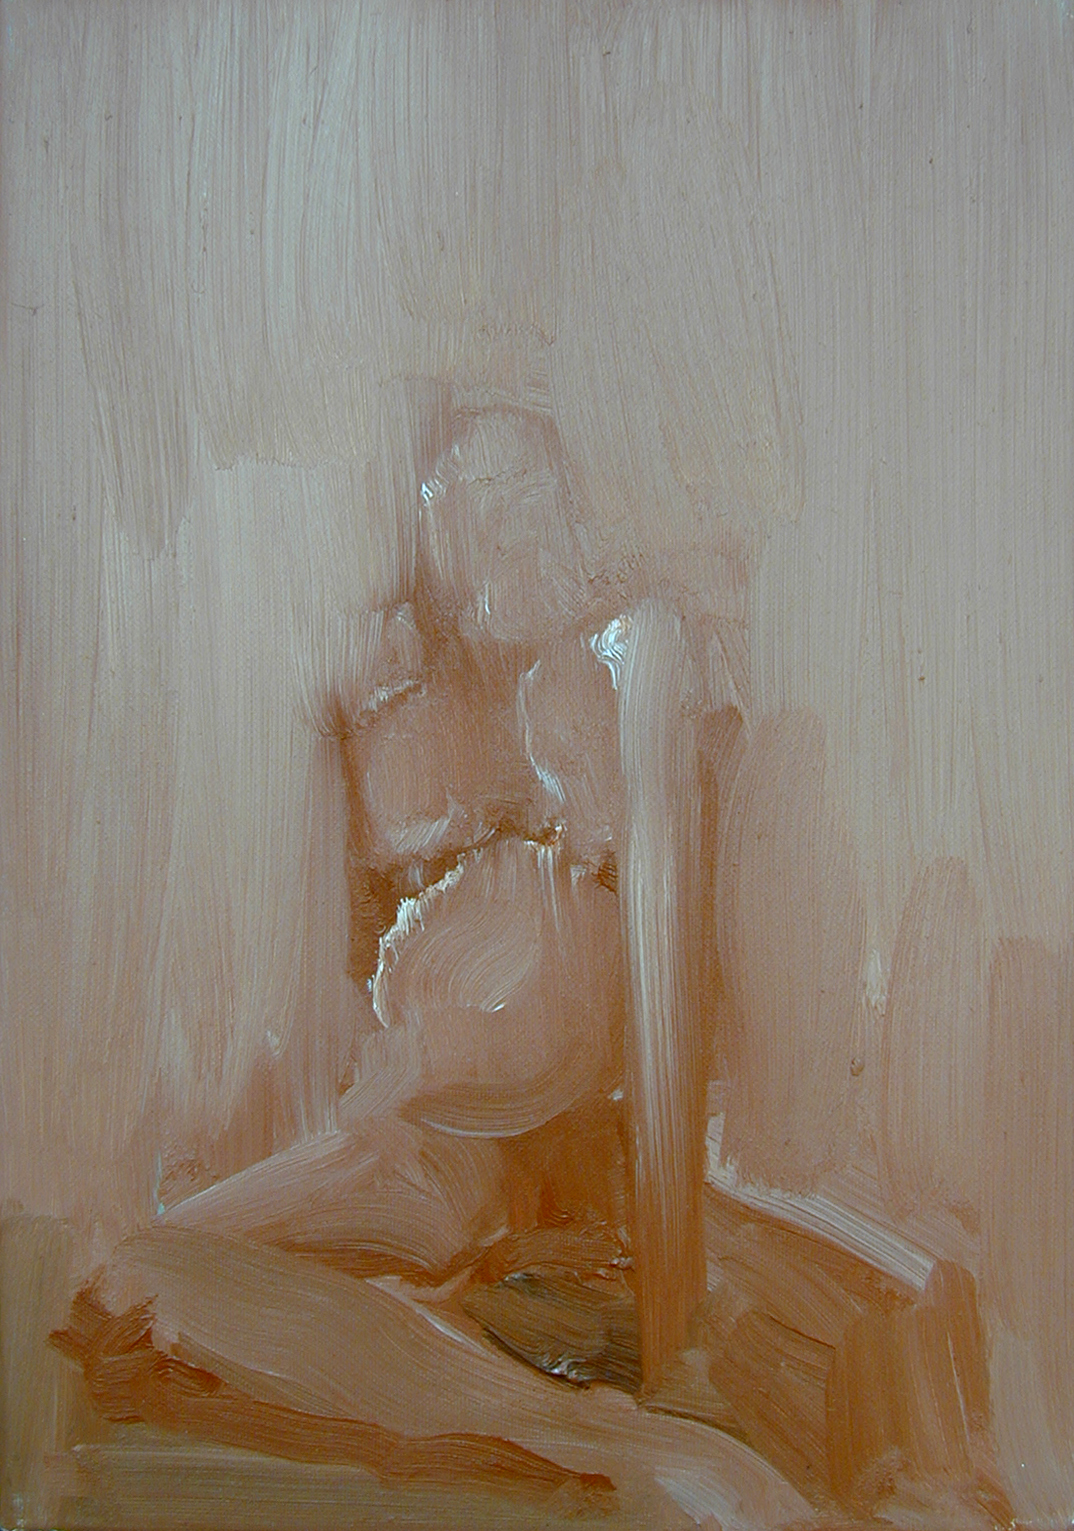 MINIATURE II, 2003, oil on canvas, 50X35cm, 20X14''